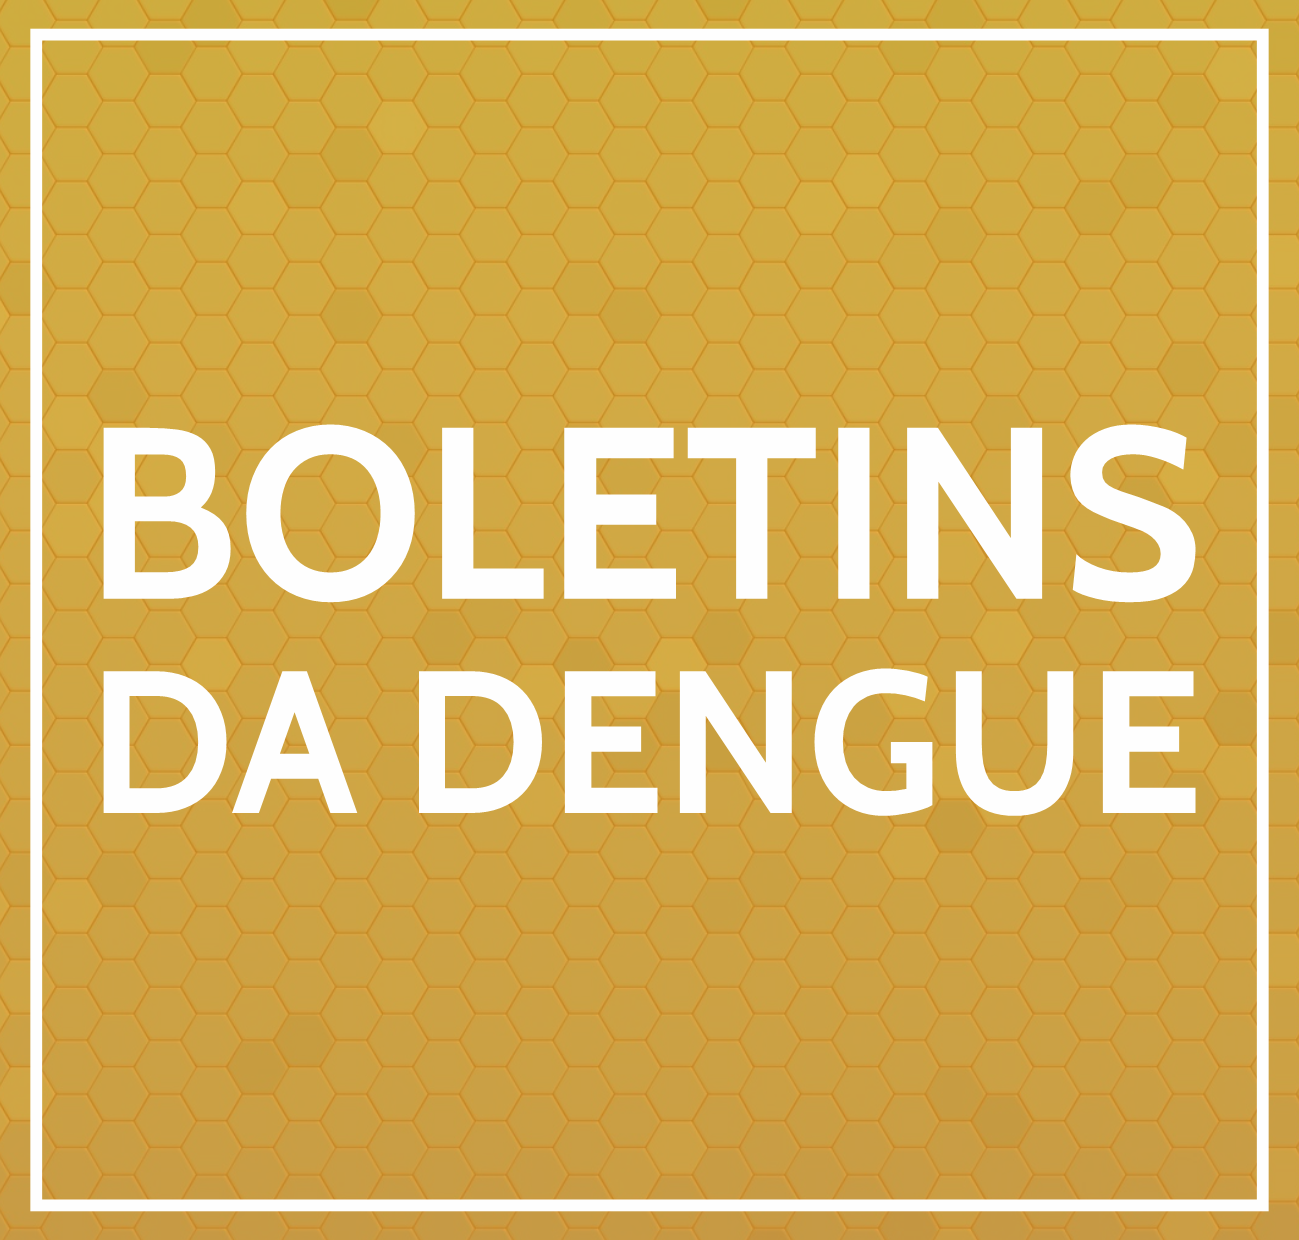 BOLETINS DA DENGUE